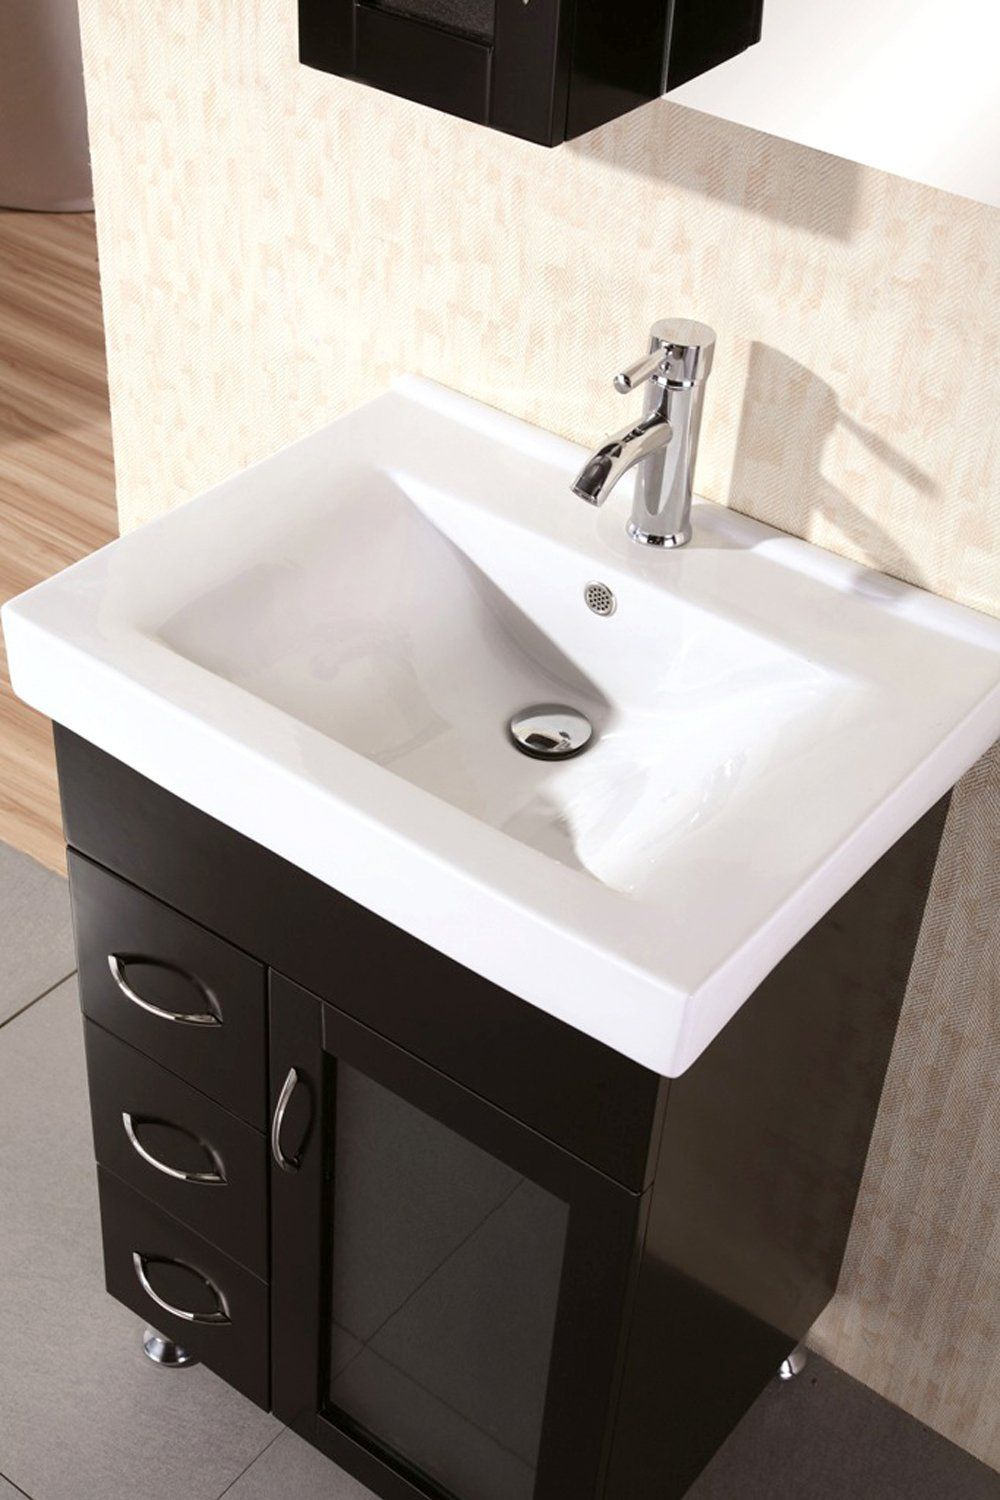 Design Element Oslo Single Porcelain Integrated DropIn Countertop - 24 inch bathroom vanity sets for bathroom decor ideas